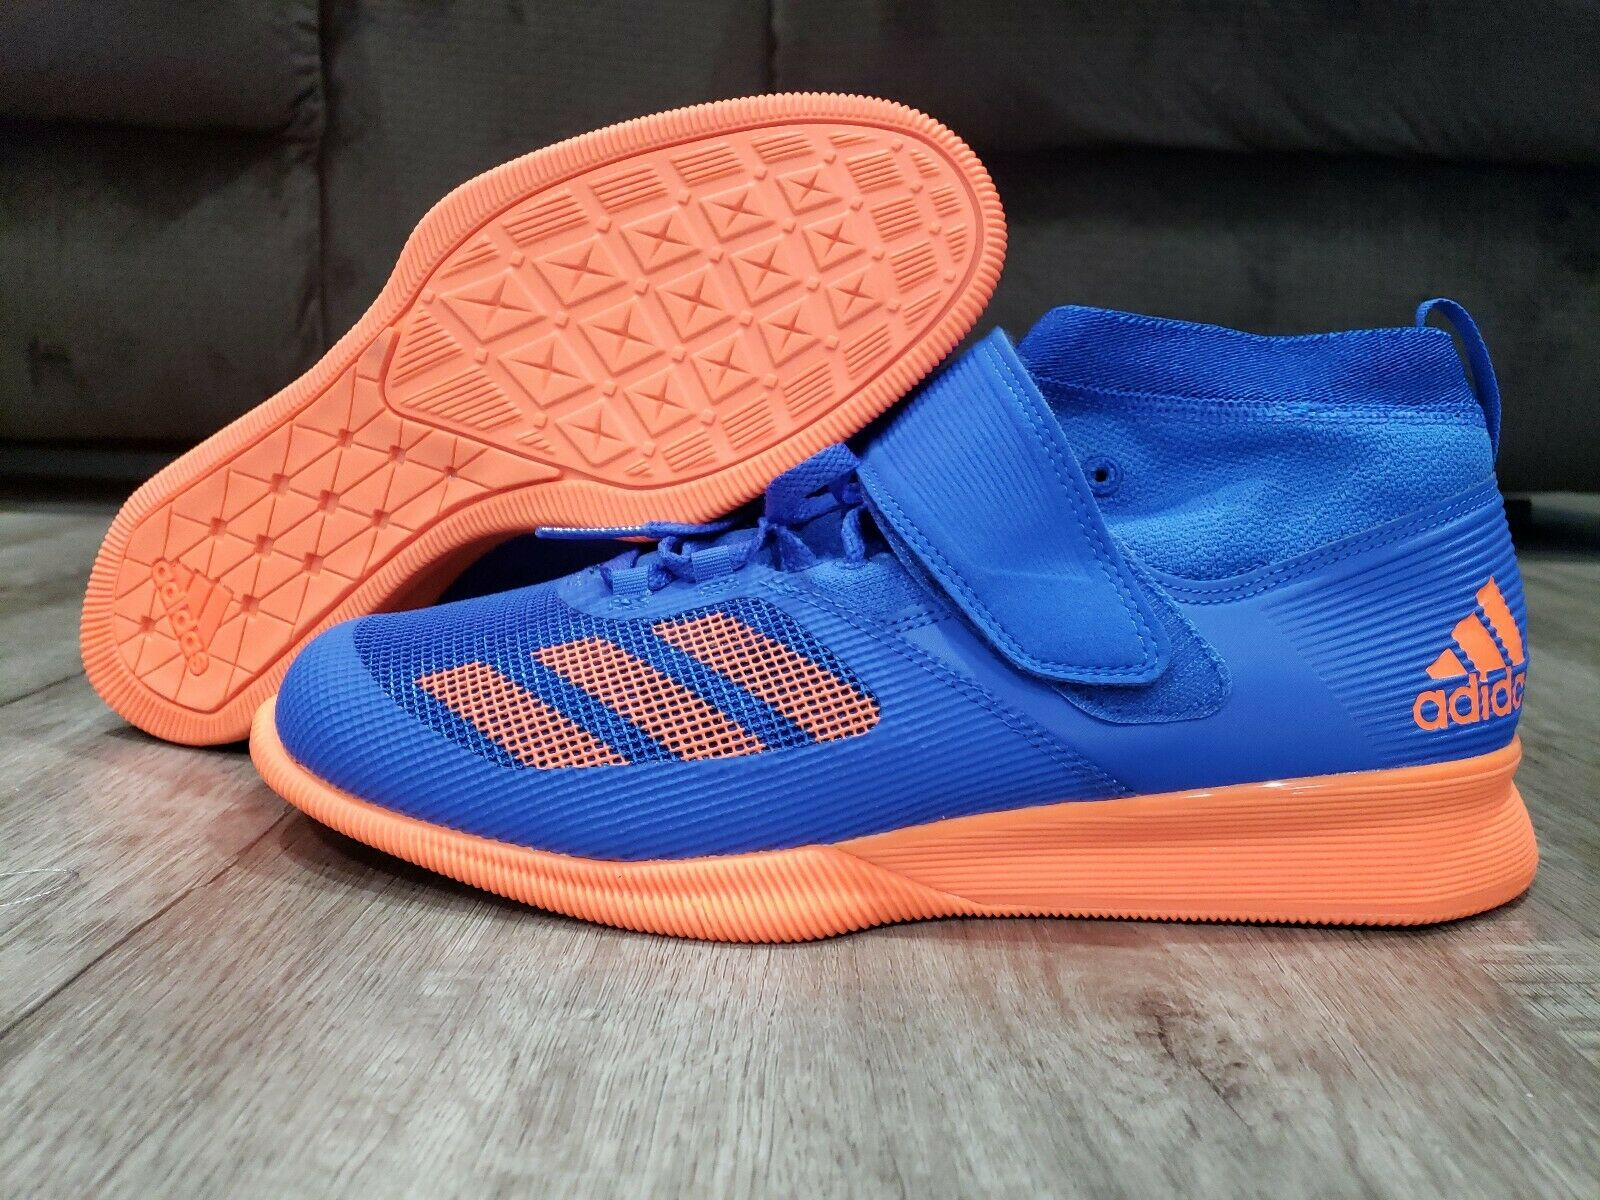 Mens Adidas Crazy Power RK Weightlifting Athletic Sports shoes BB6360 Sz 8.5